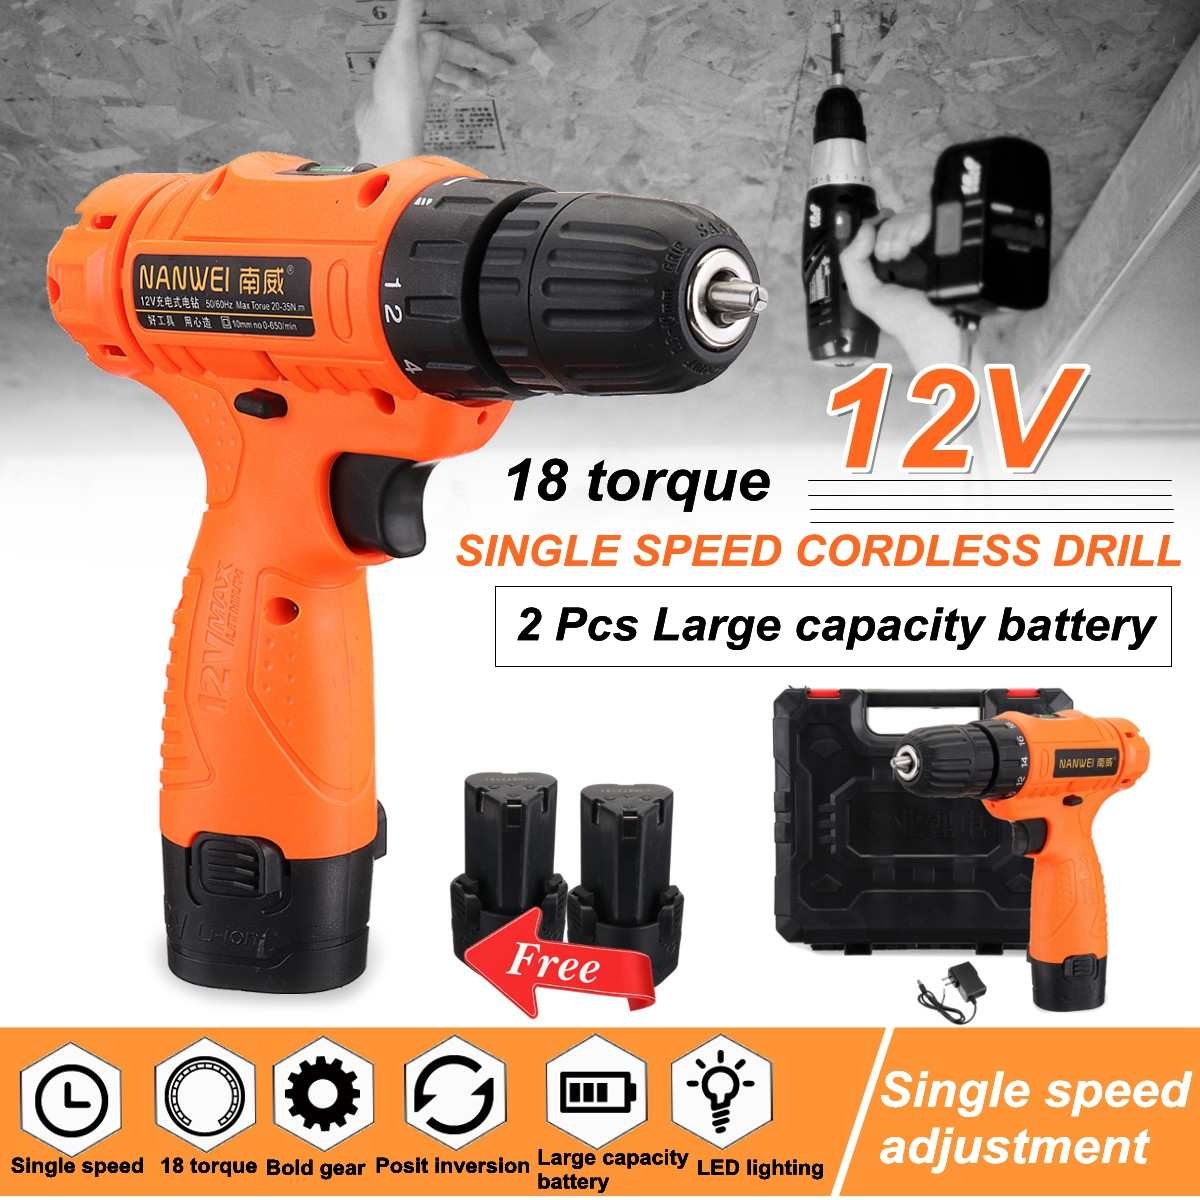 12V Electric Screwdriver Lithium Battery Rechargeable Parafusadeira Furadeira Multi function Cordless Electric Drill Power Tools